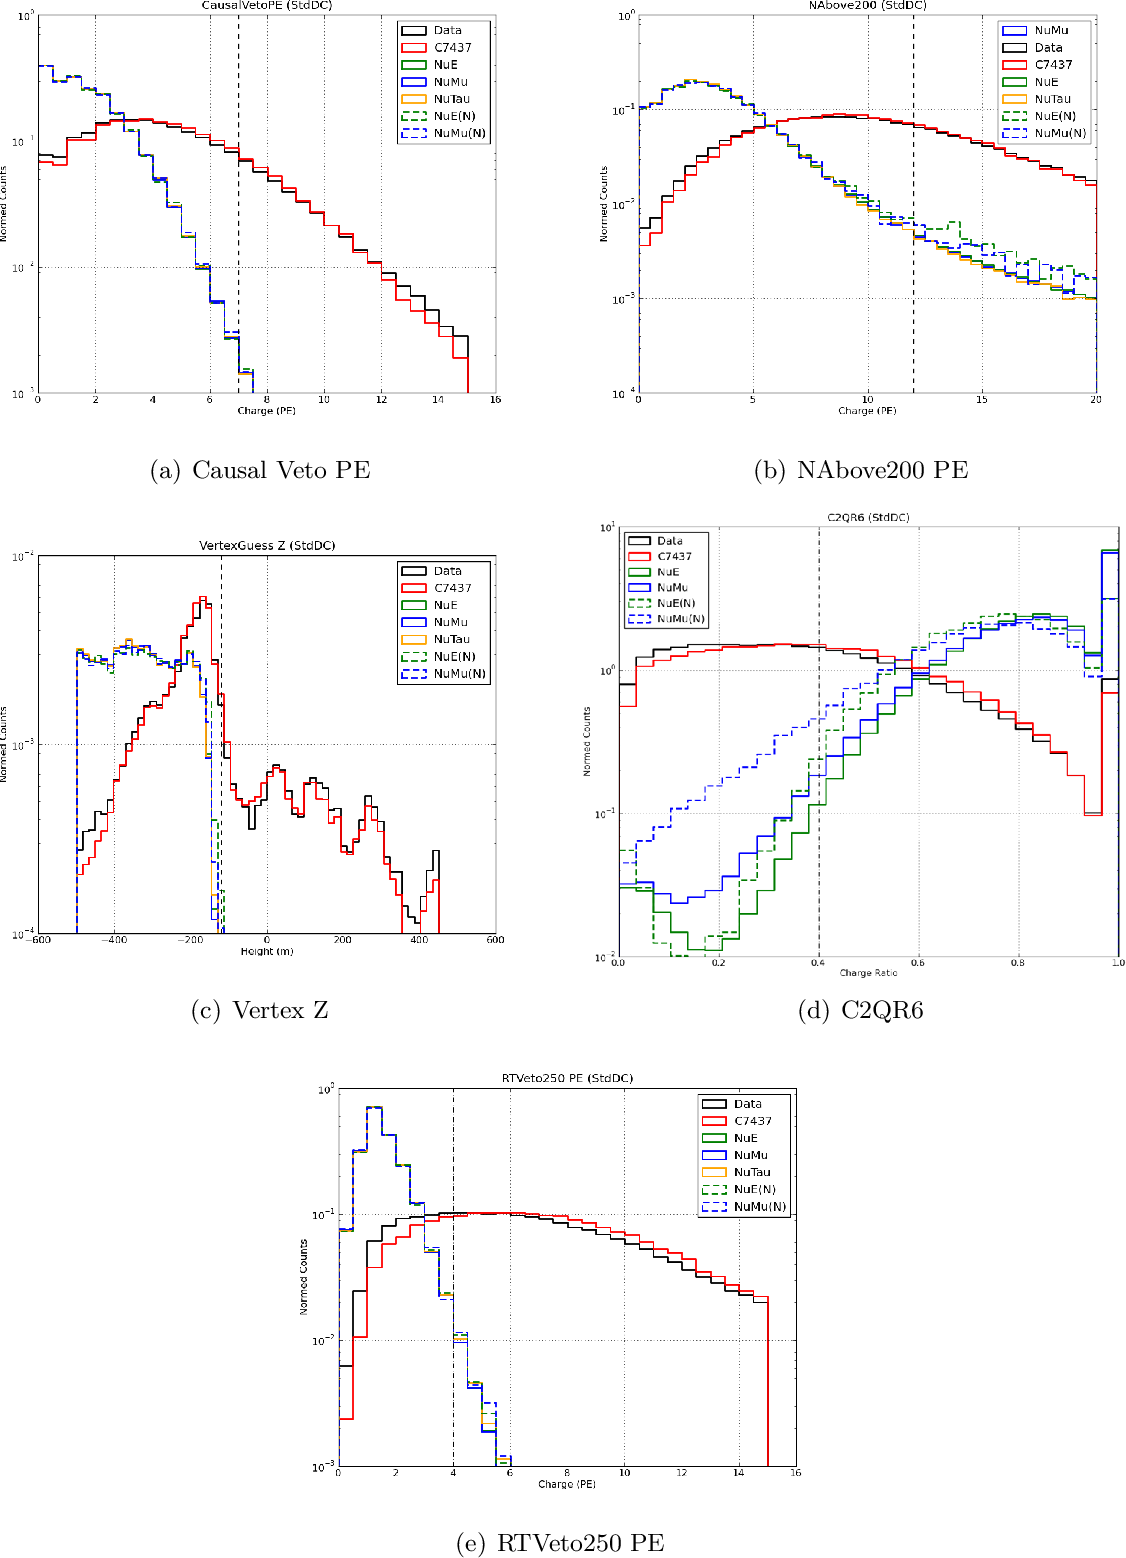 Figure 56: Normalized distributions of the L3 LES cut variables for simulation and real data.